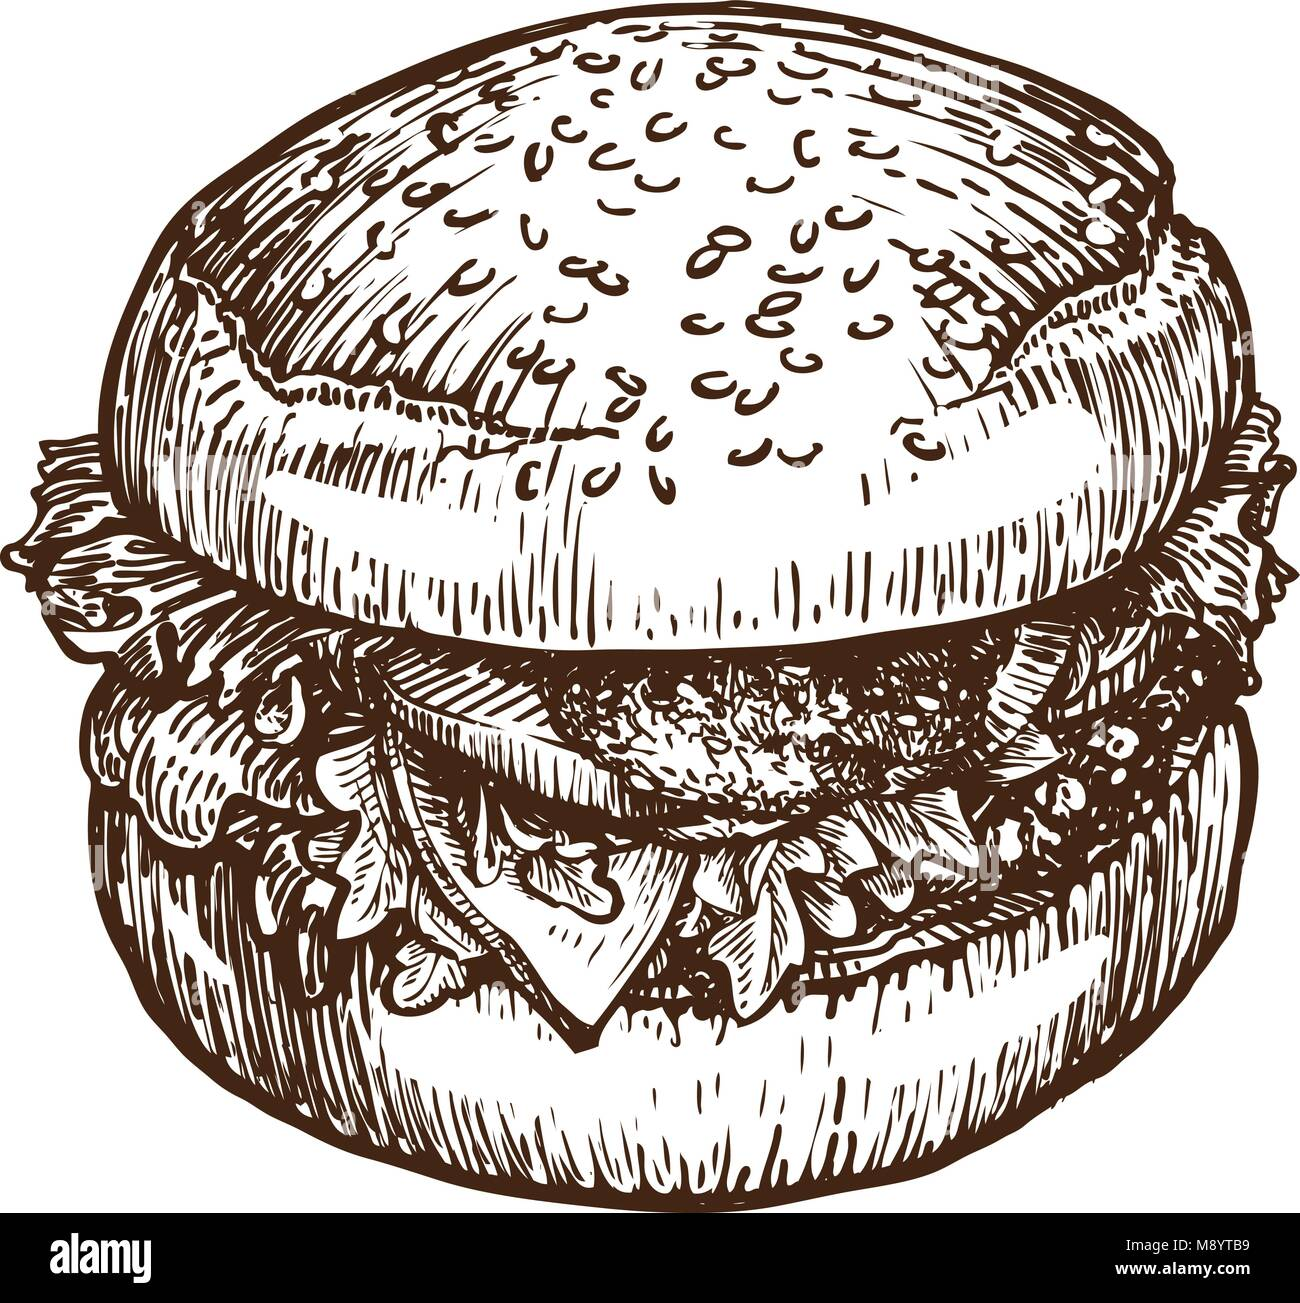 Burger, hamburger sketch. Fast food concept. Hand-drawn vector illustration - Stock Vector